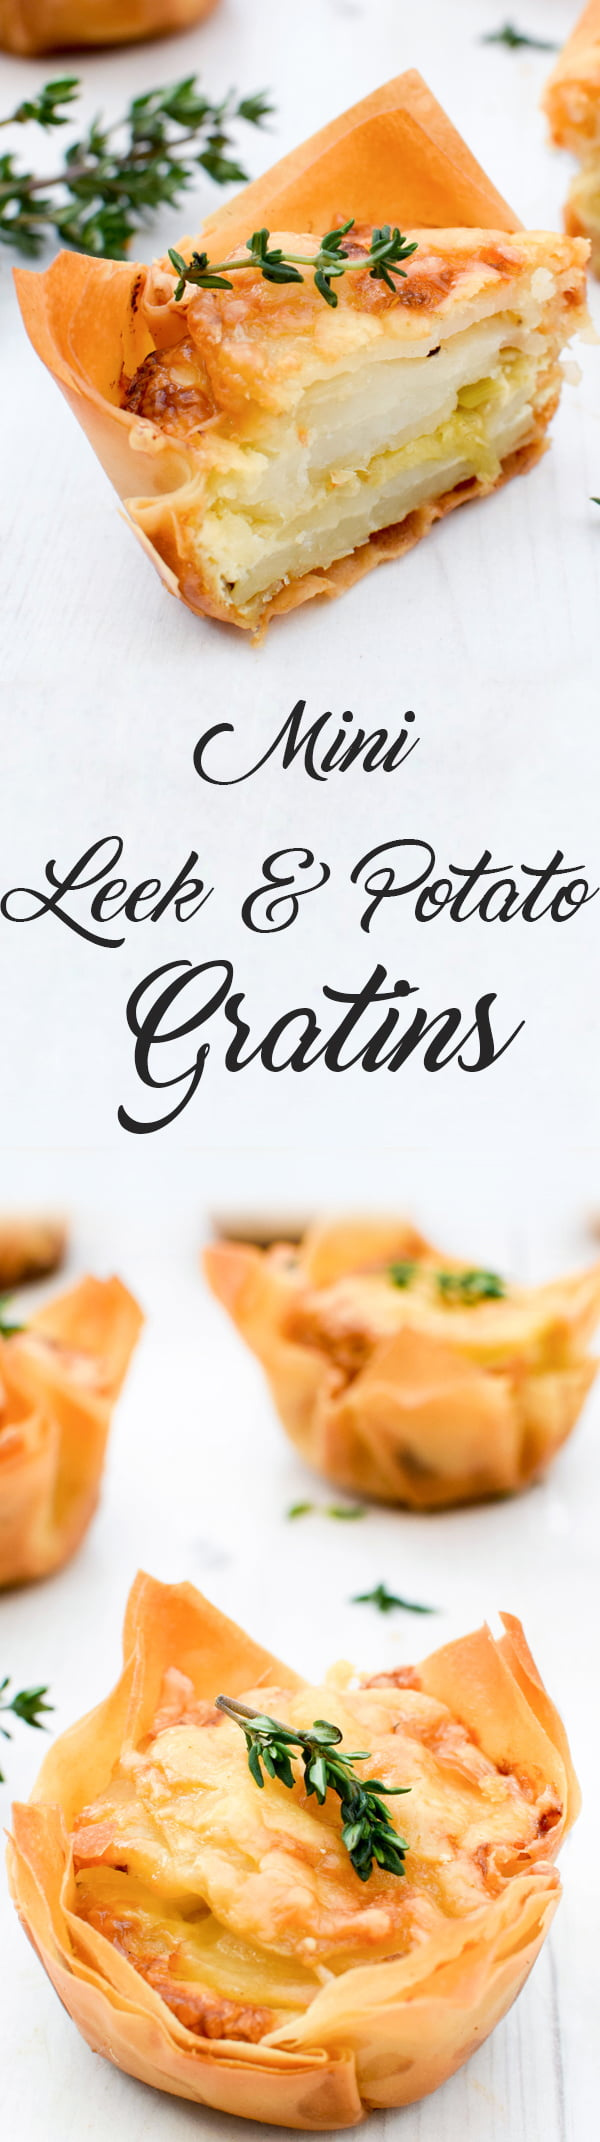 Mini Leek & Potato Gratins [vegetarian] by The Flexitarian